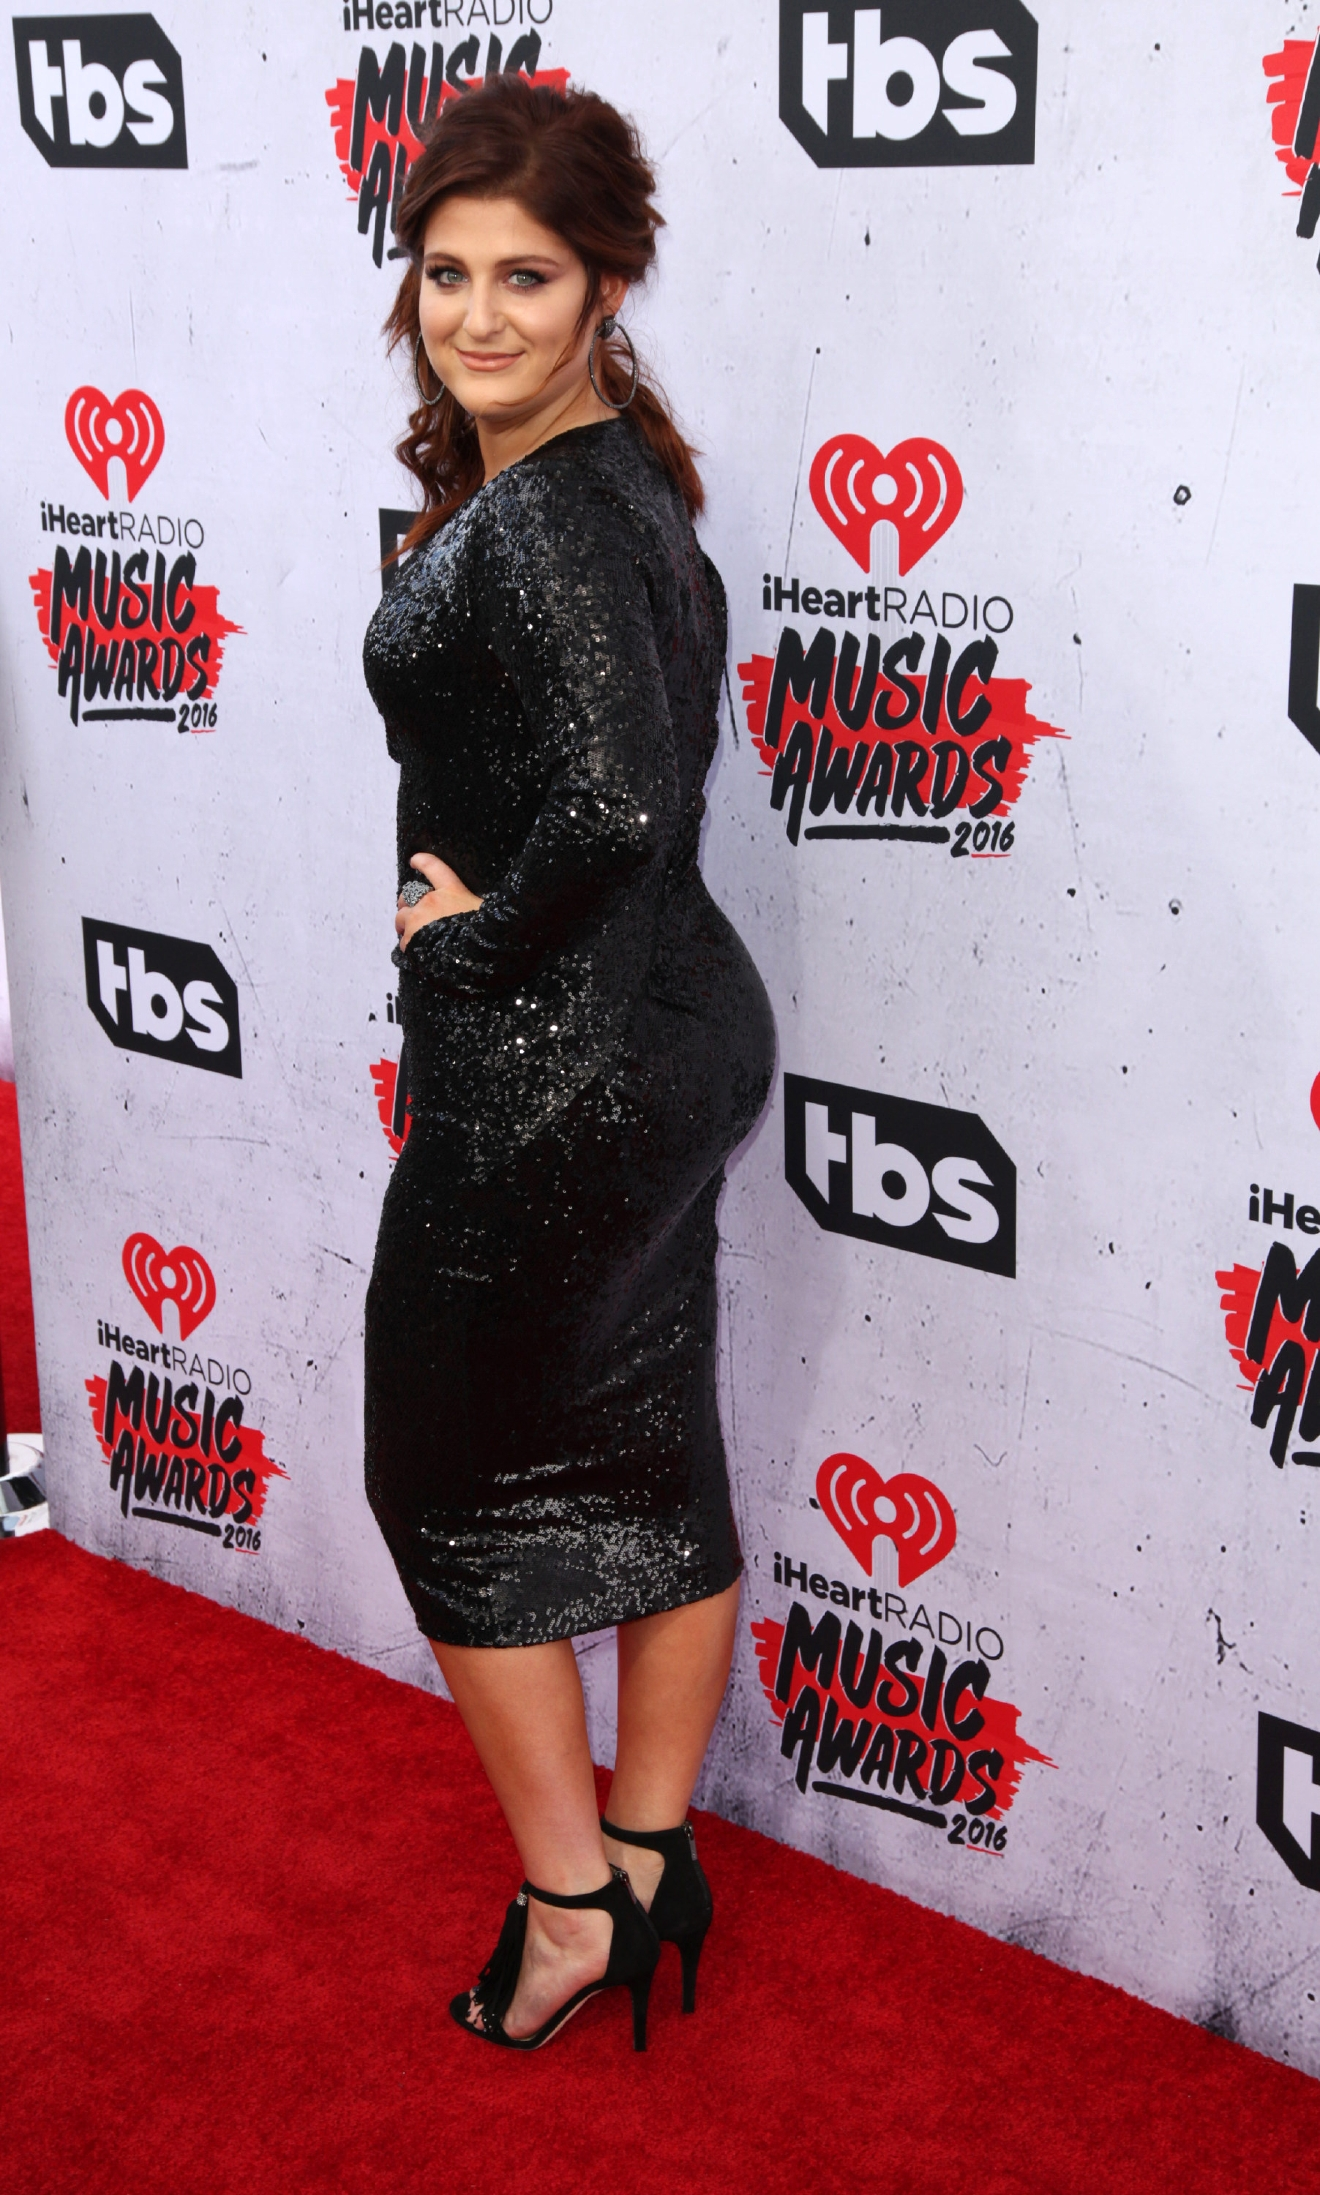 Celebrities attend iHeartRadio Music Awards at The Forum.                                    Featuring: Meghan Trainor                  Where: Los Angeles, California, United States                  When: 03 Apr 2016                  Credit: Brian To/WENN.com